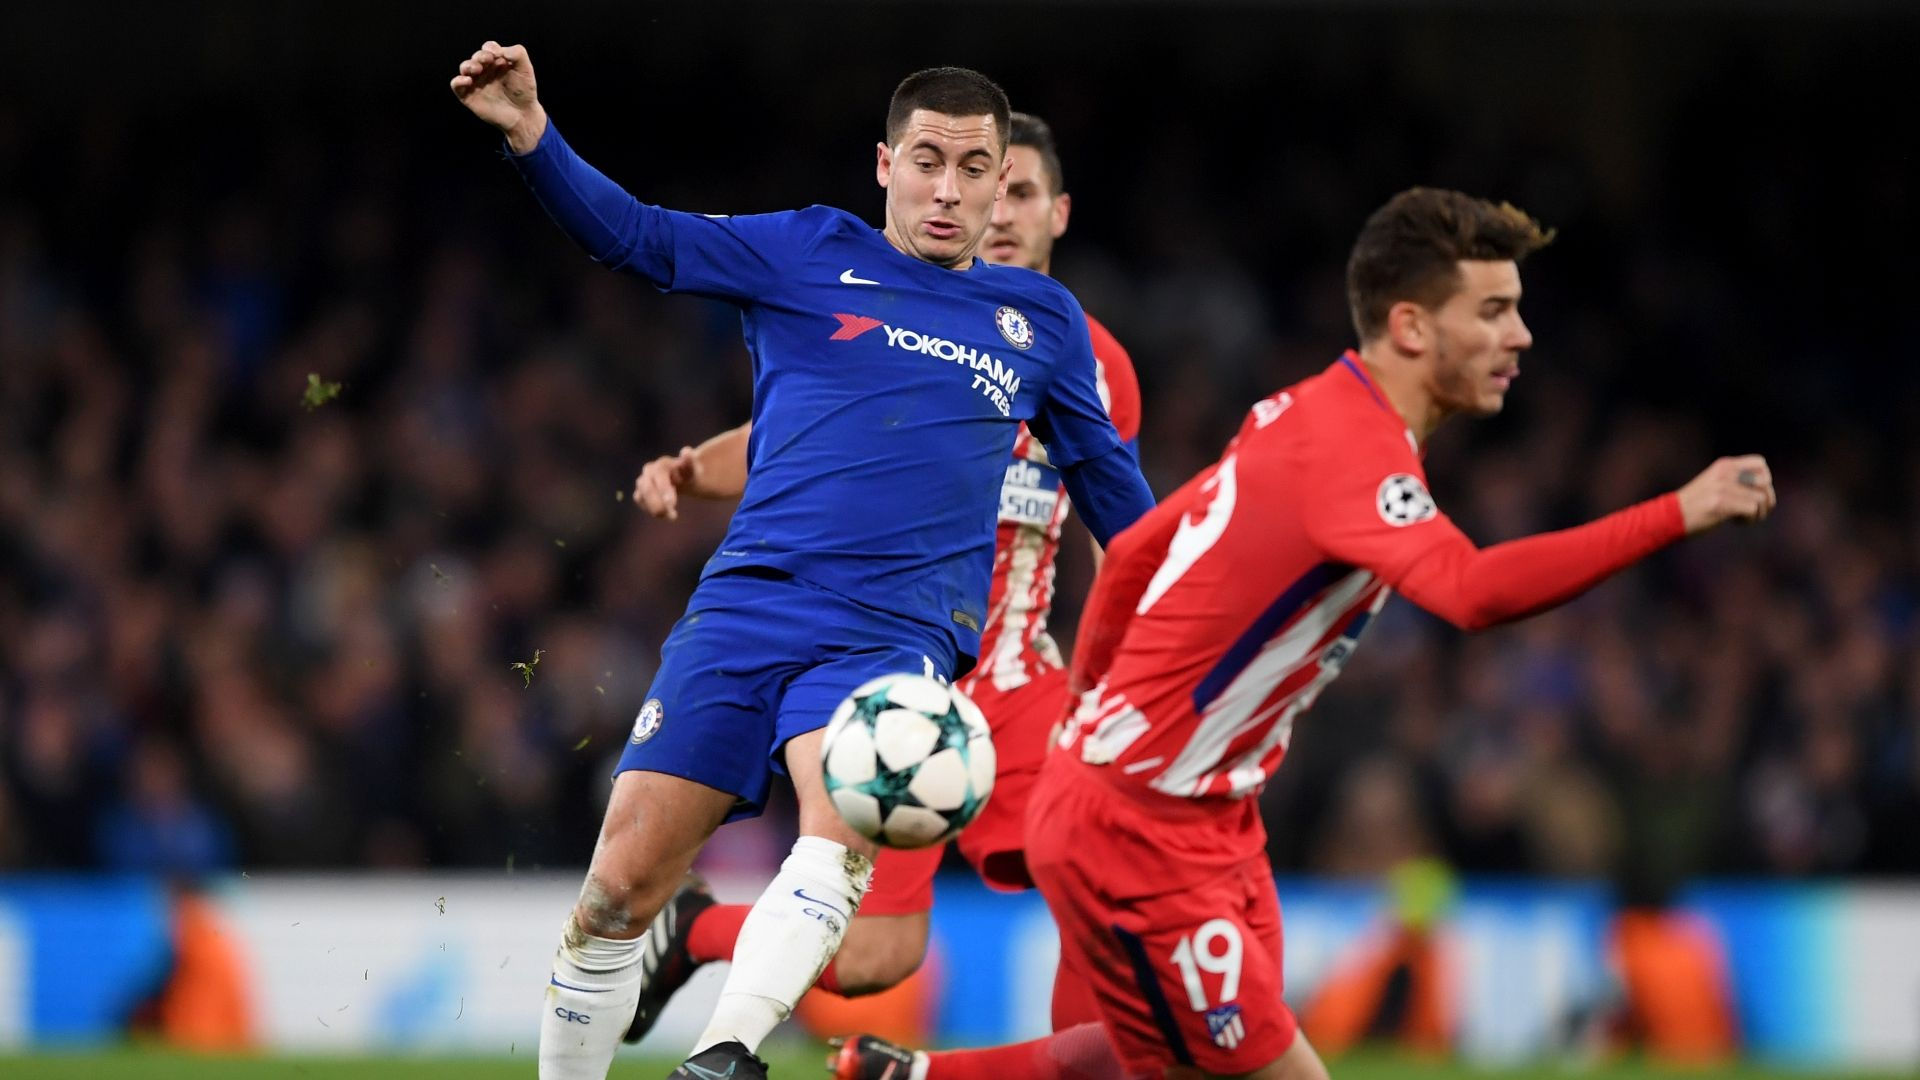 Chelsea could rue drawing with Atletico